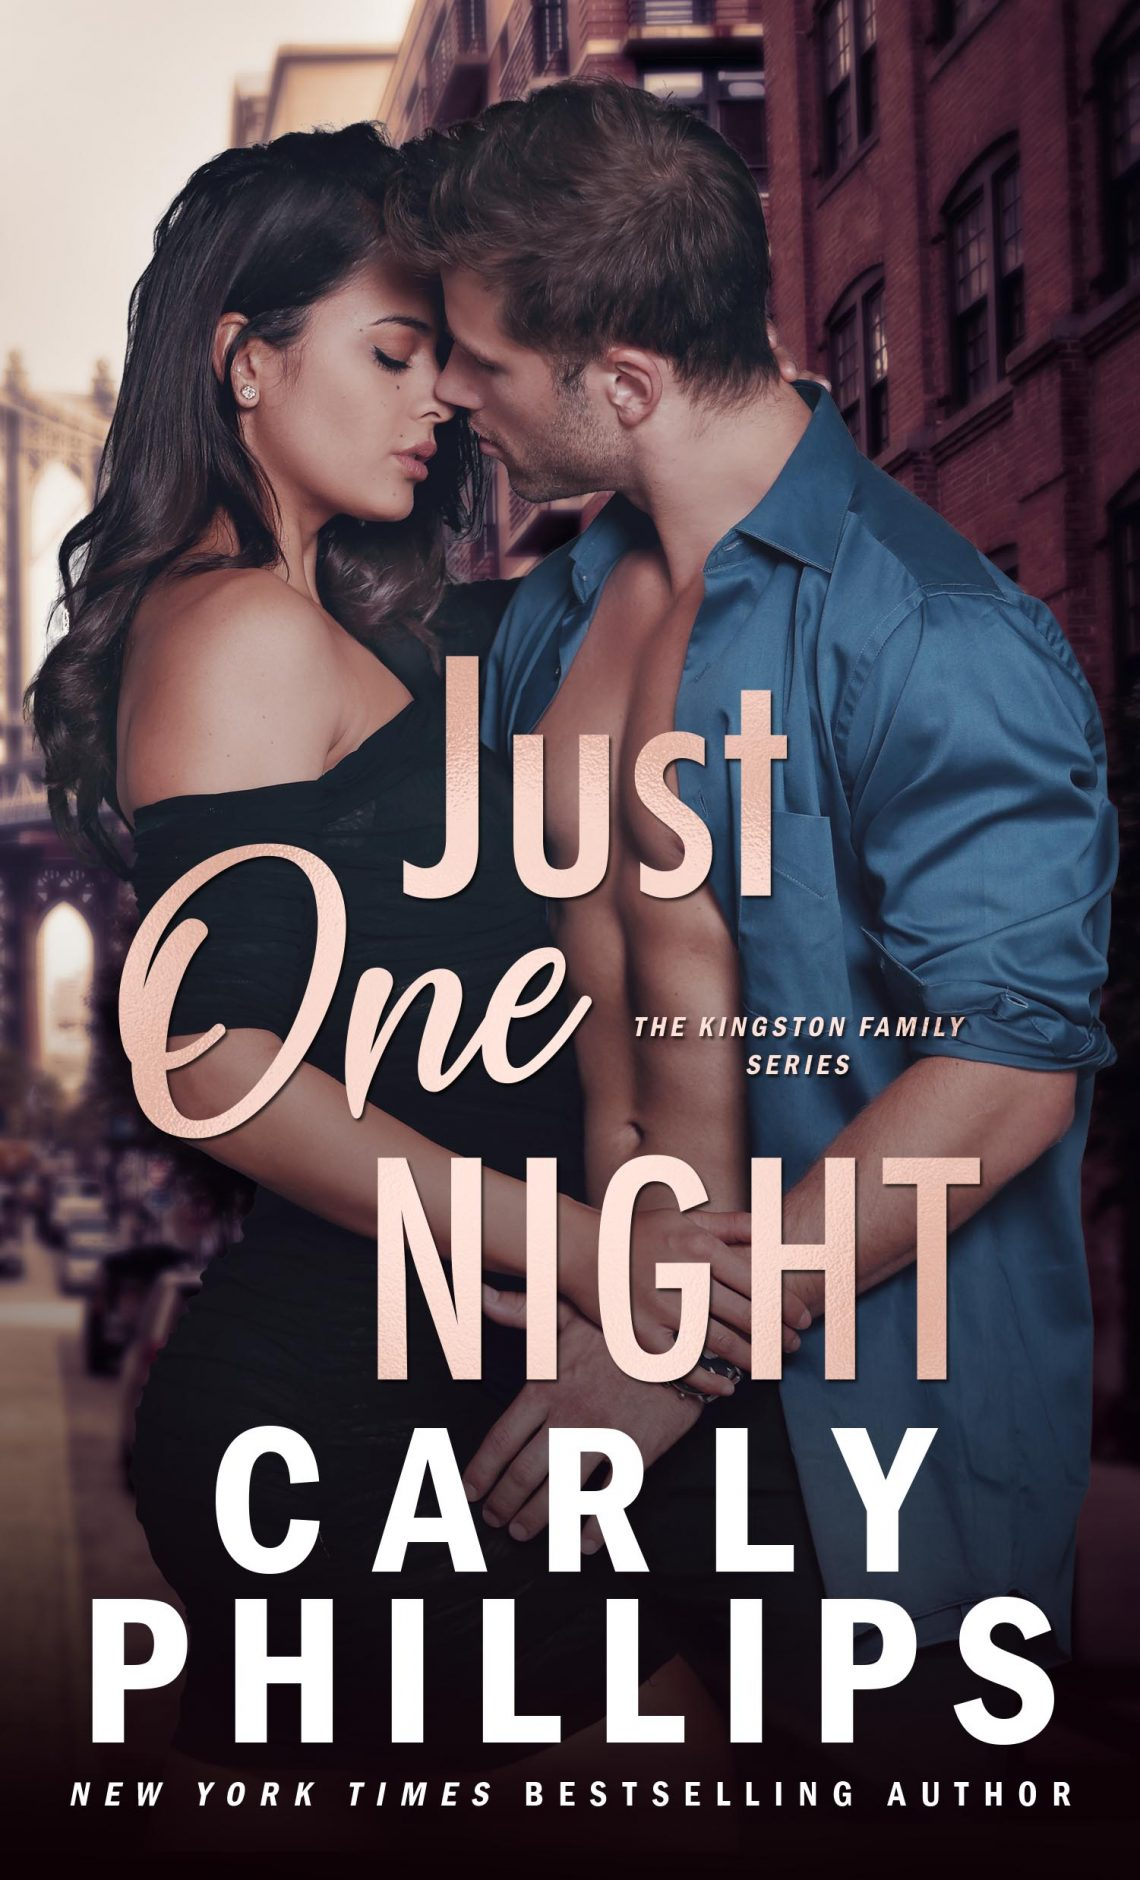 Picture of the book cover for Just One Night by Carly Phillips